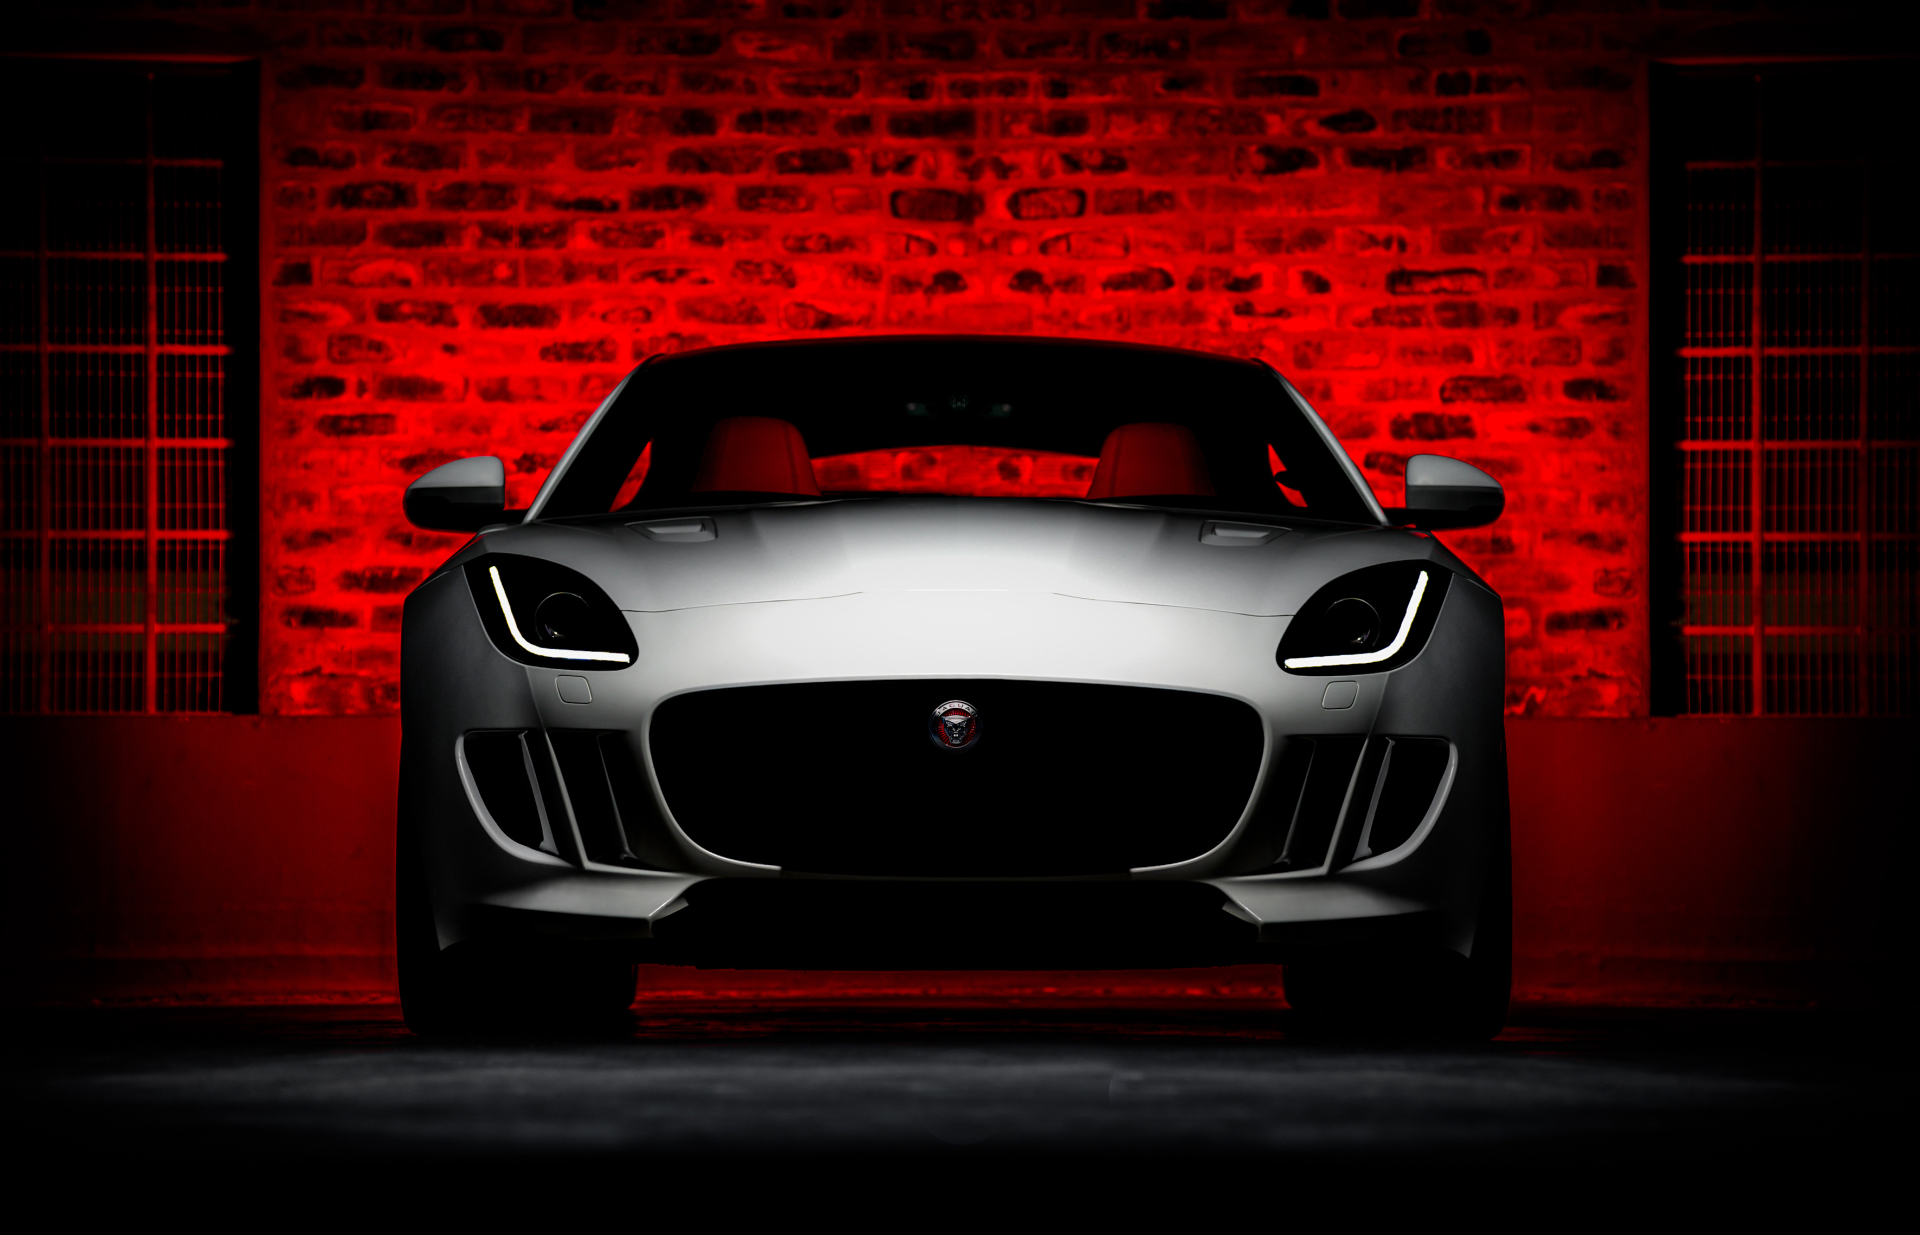 Drivers car of the year 2015 - Jaguar F Type R AWD. Image: Bryce Barnard